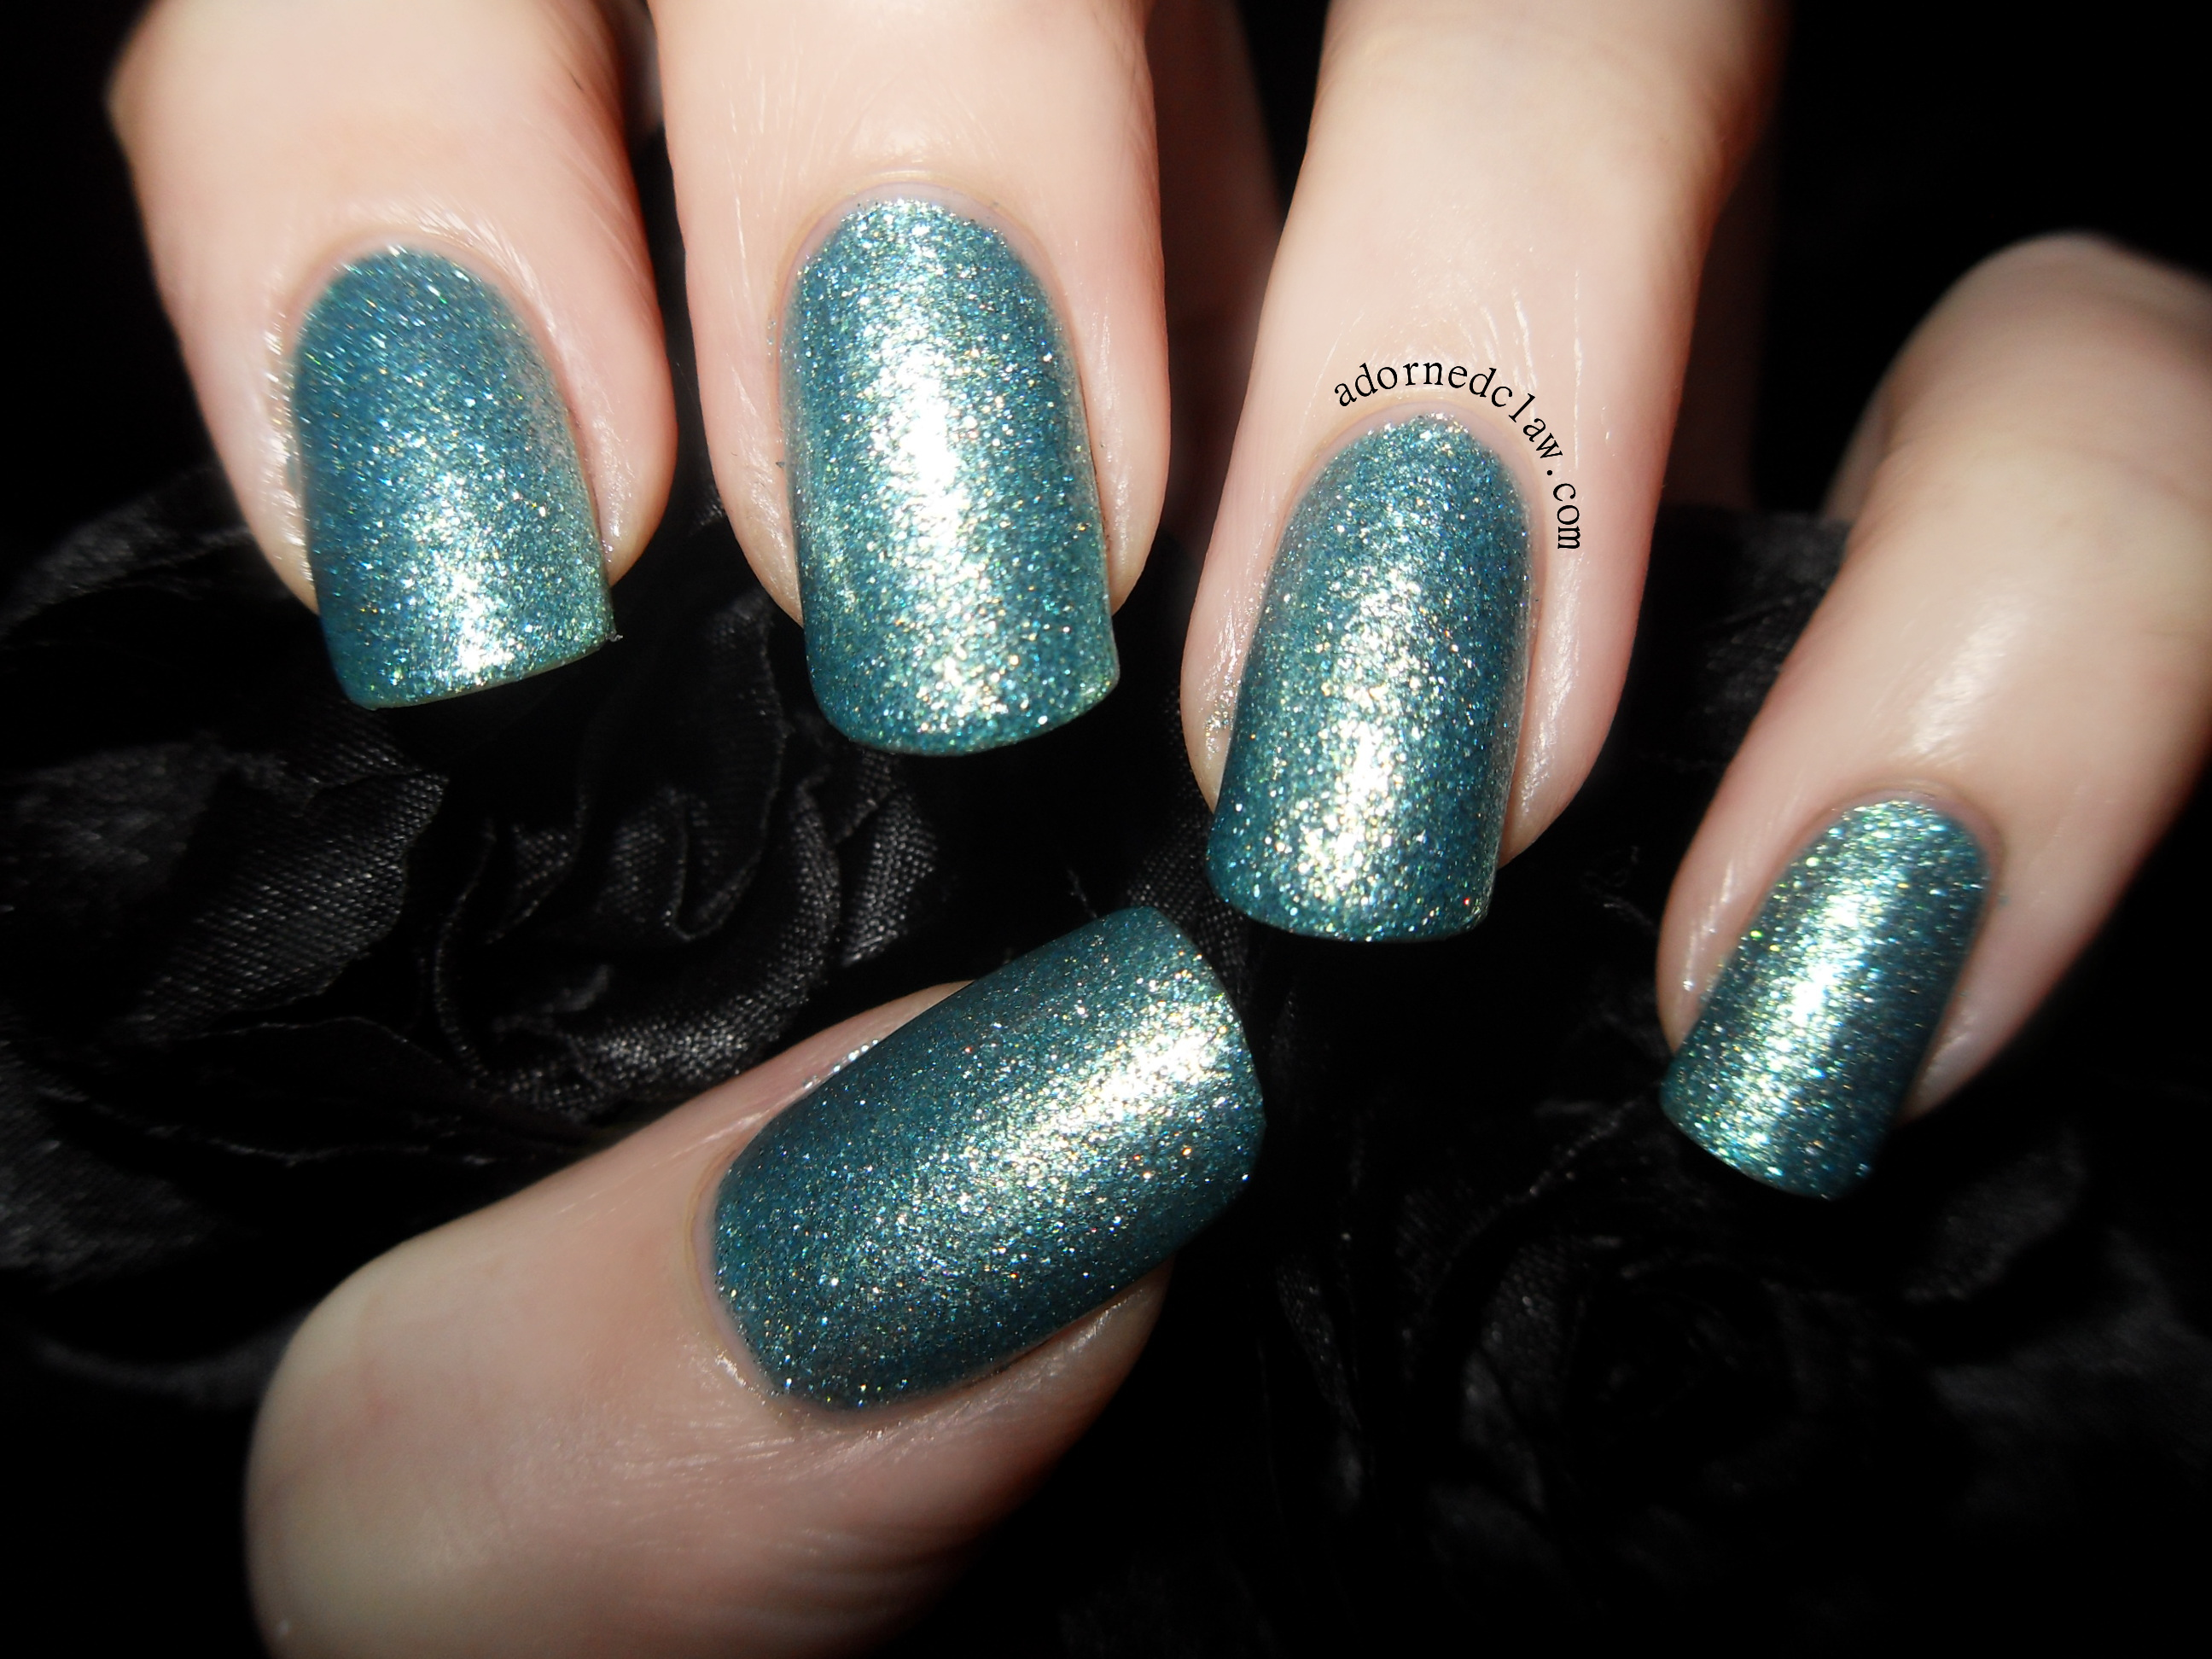 Japanese Nail Polish | The Adorned Claw | Page 2